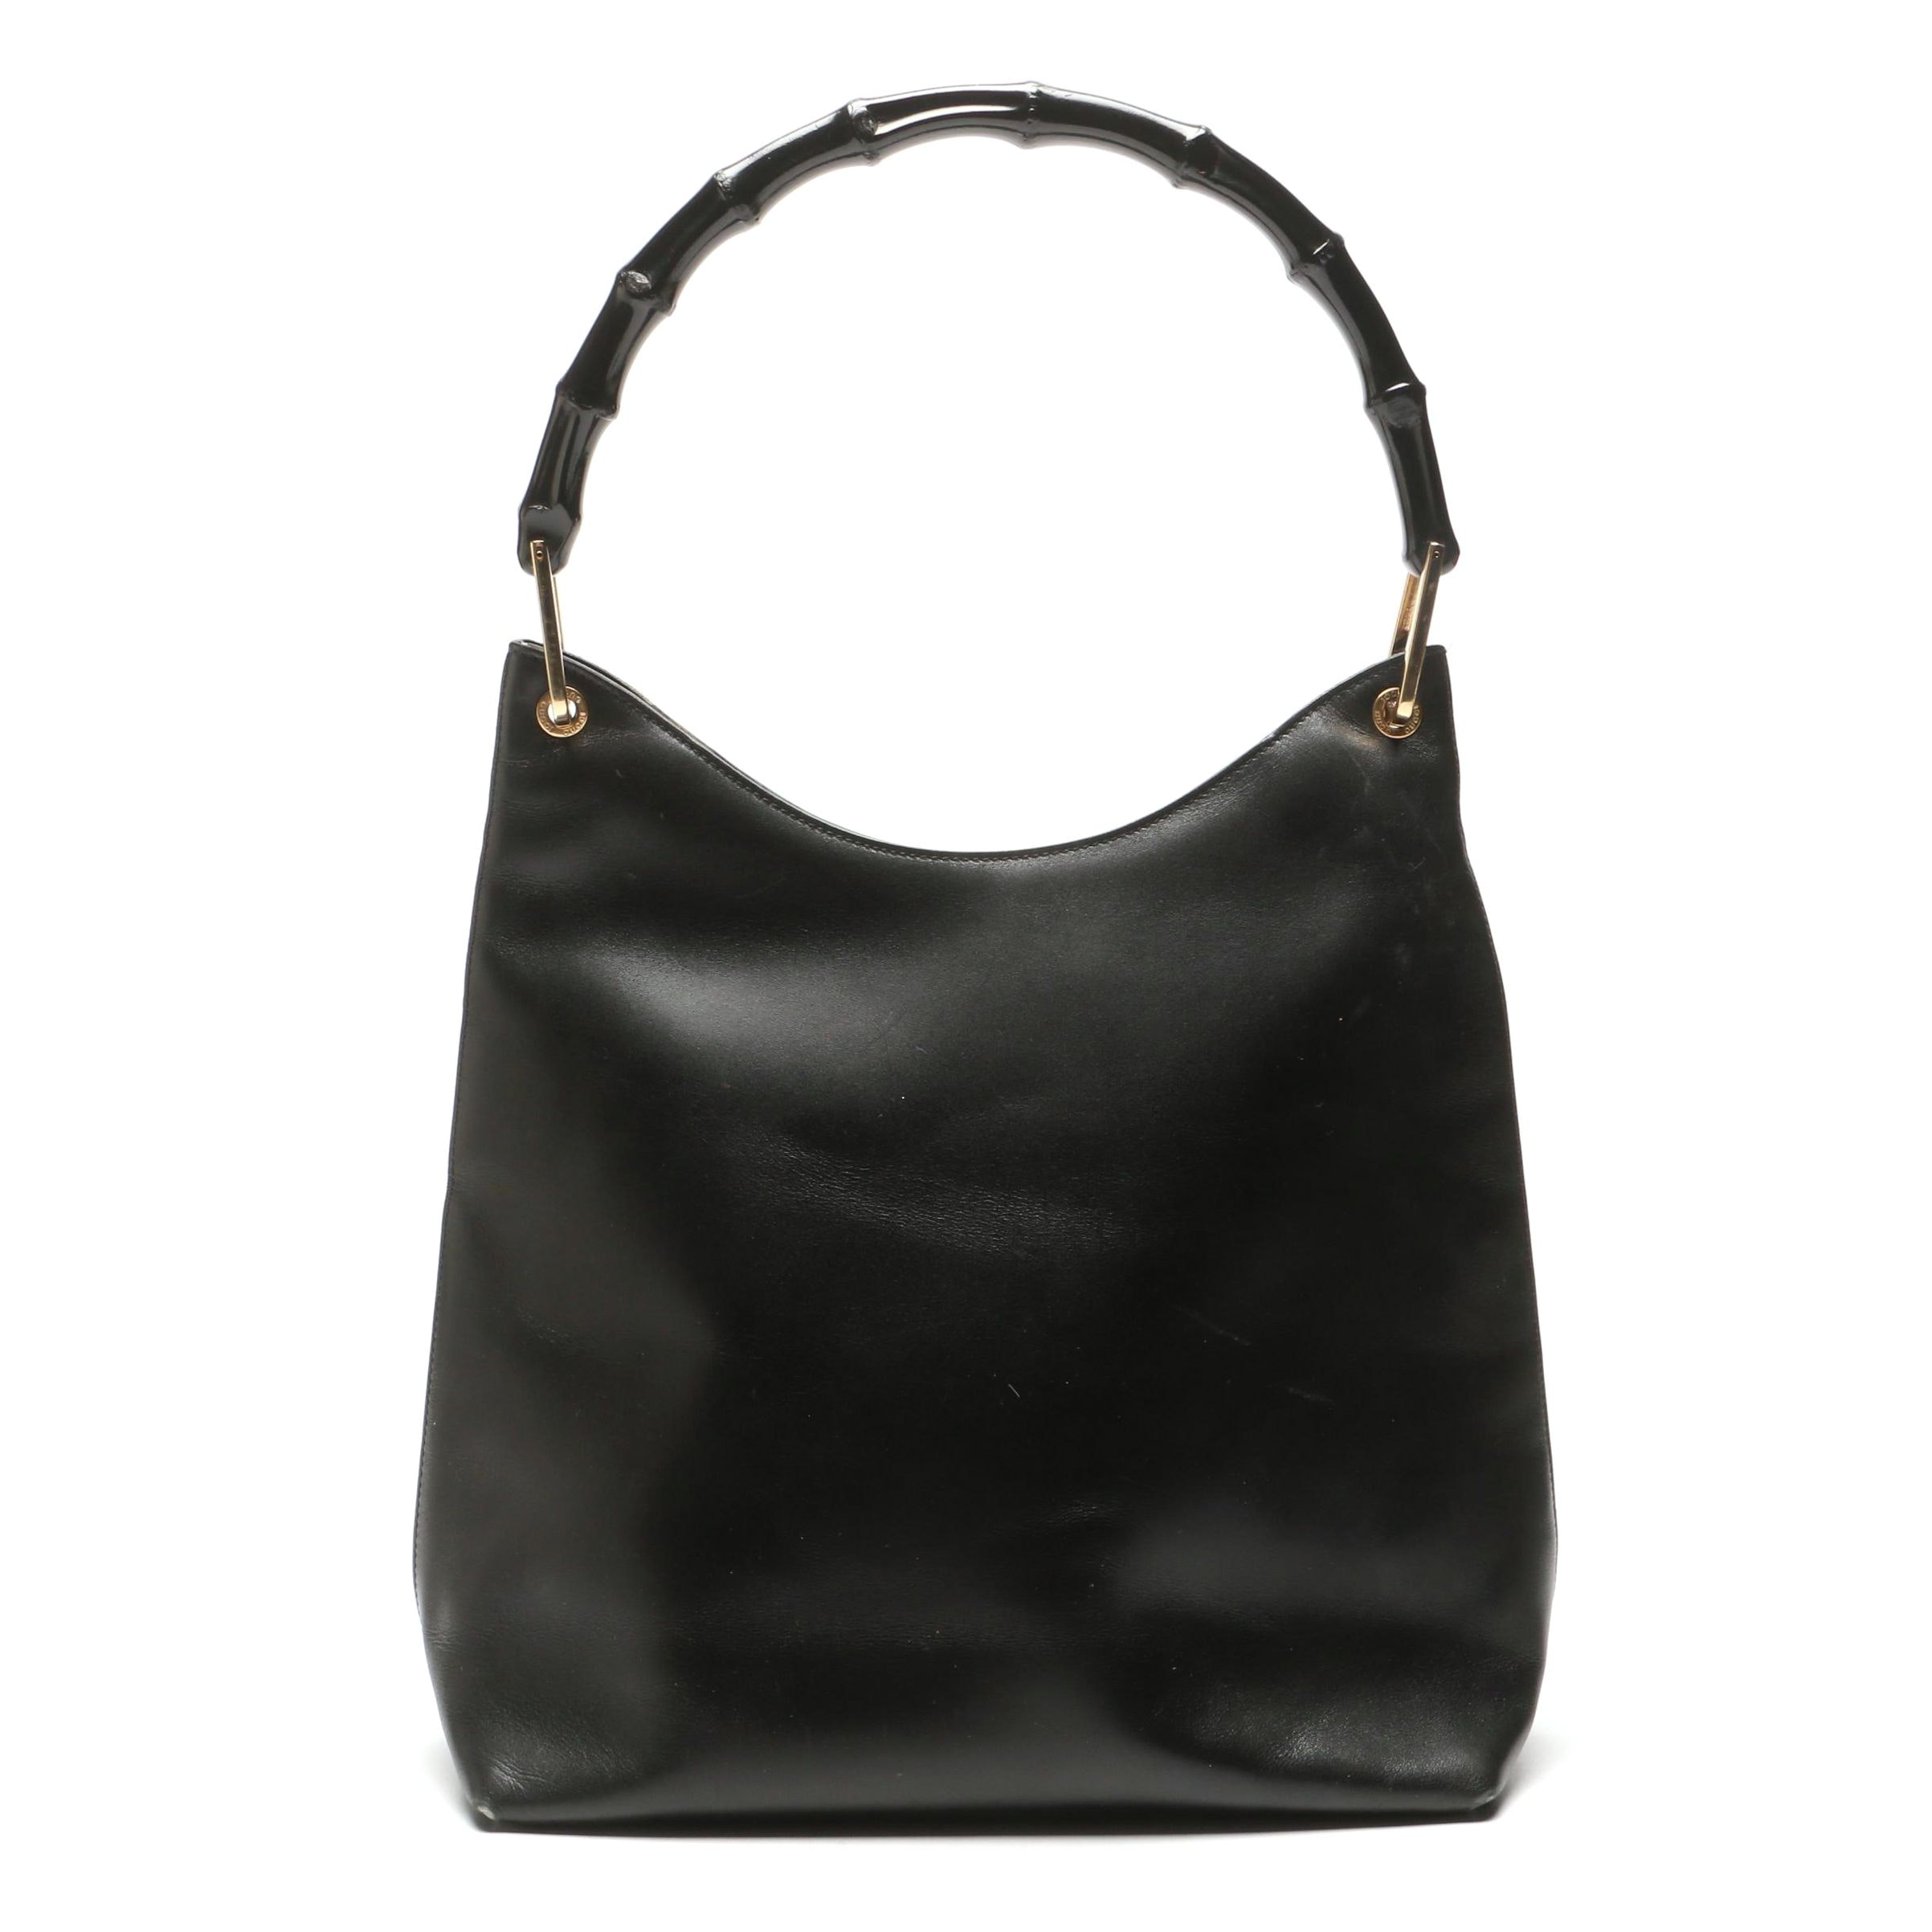 Gucci Black Leather Handbag with Bamboo Style Handle